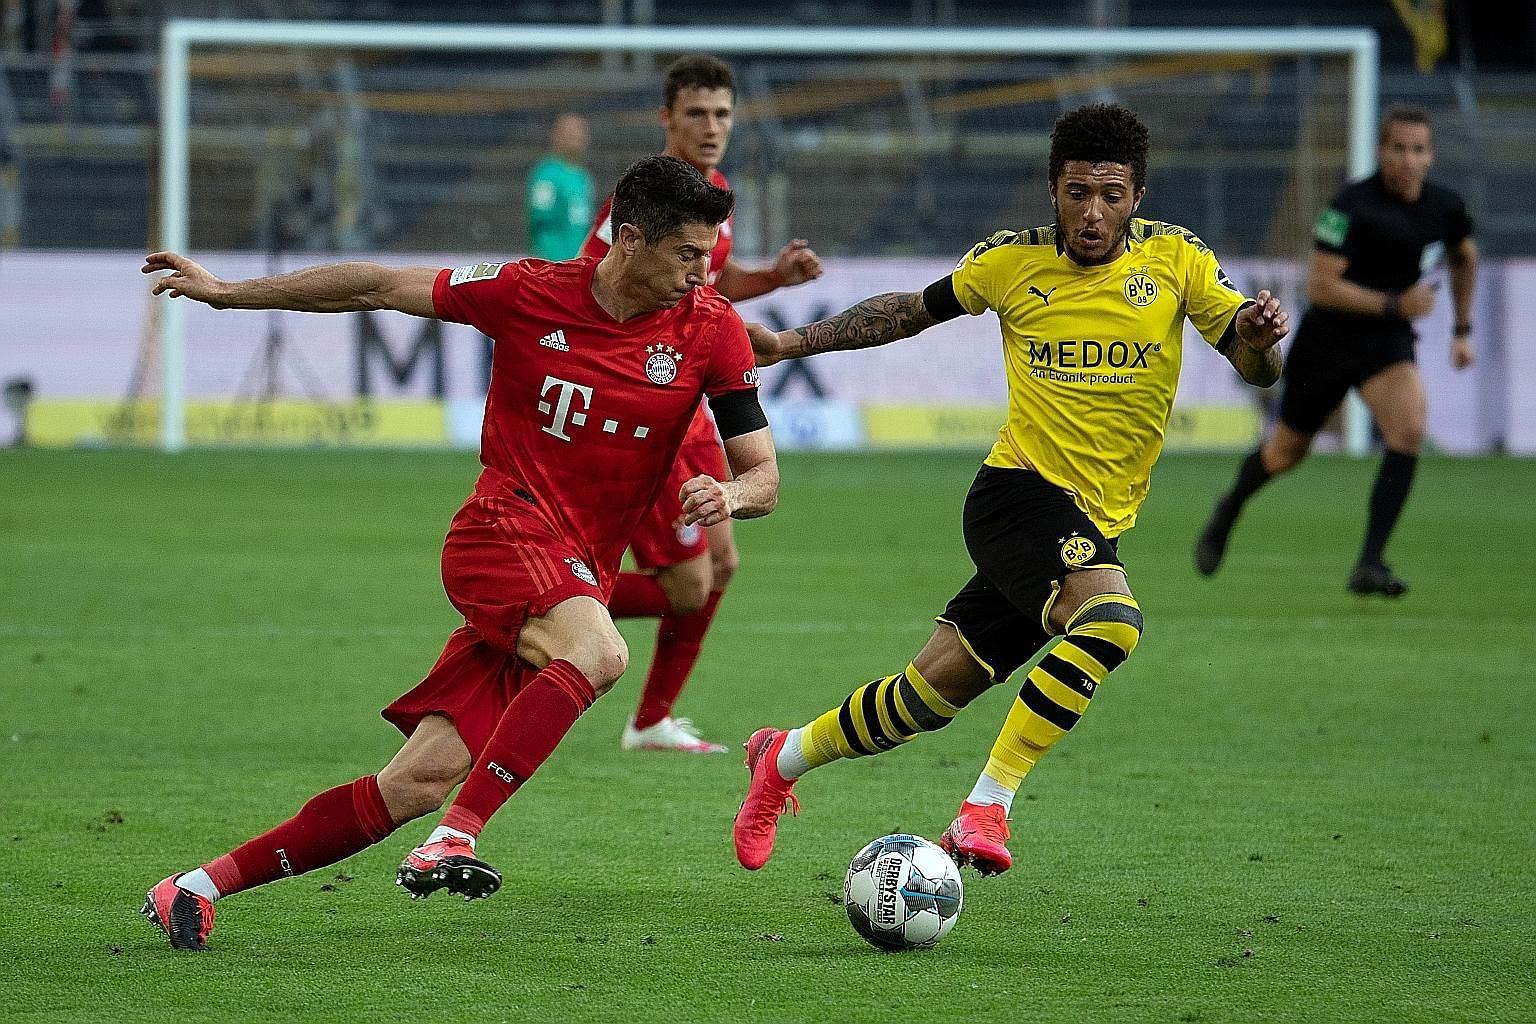 Bayern's Robert Lewandowski taking on Dortmund's Jadon Sancho. The latest €4.4 billion Bundesliga deal represents the first drop in the value of a new rights package since 2002.